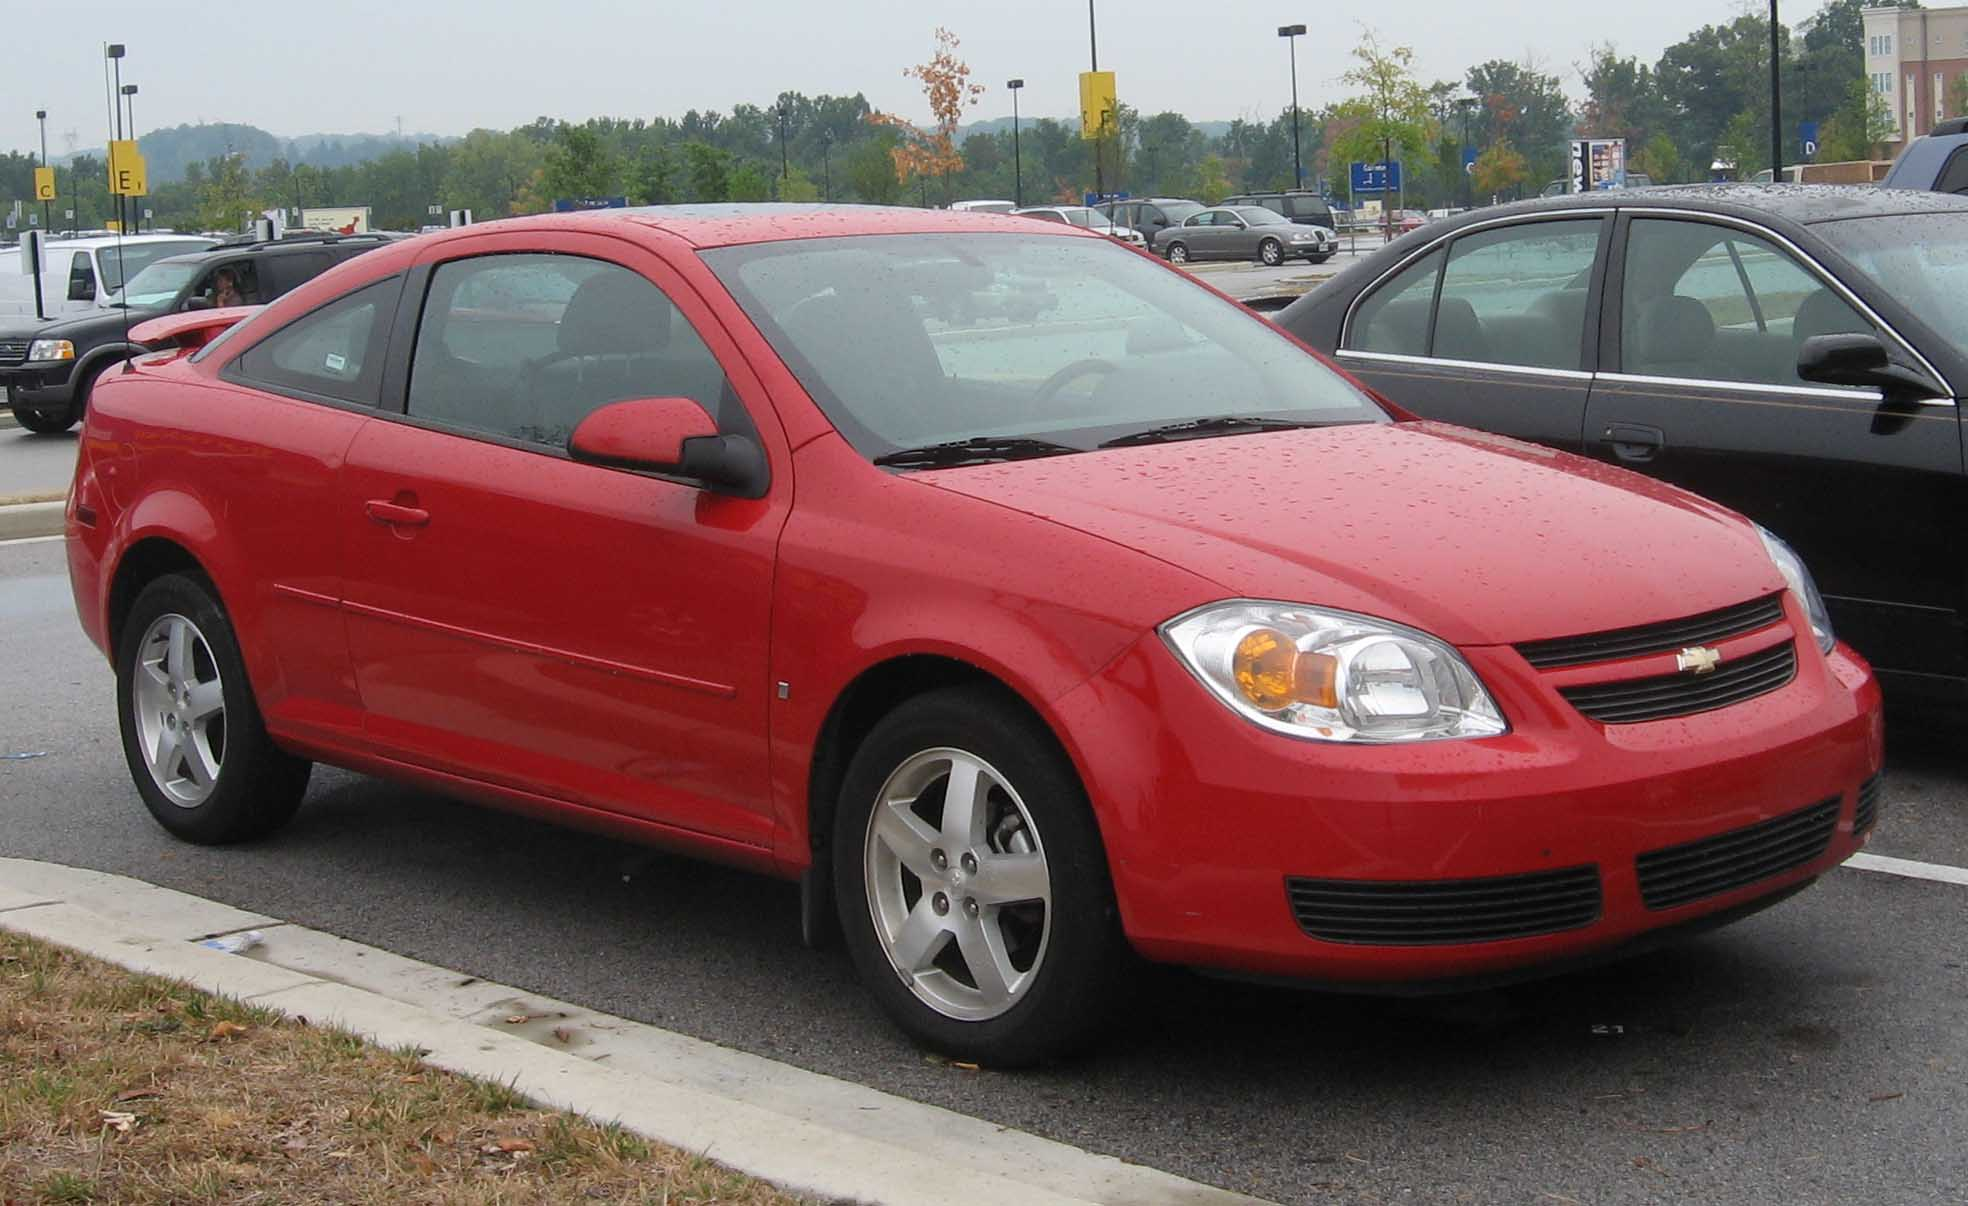 File:Chevrolet-Cobalt-Coupe.JPG - Wikimedia Commons